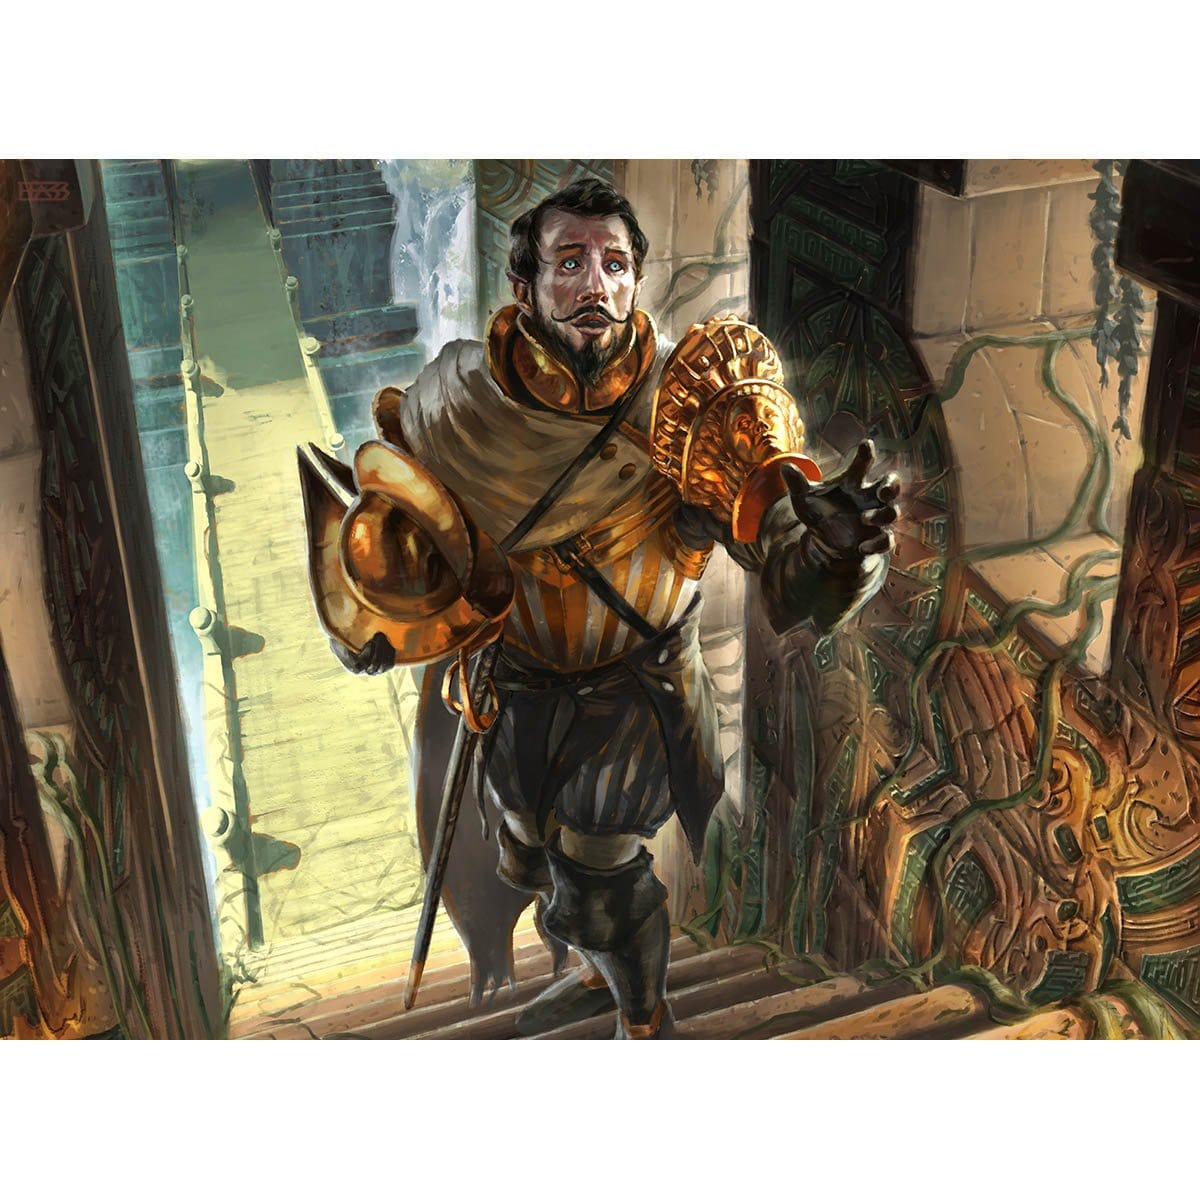 Forerunner of the Legion Print - Print - Original Magic Art - Accessories for Magic the Gathering and other card games